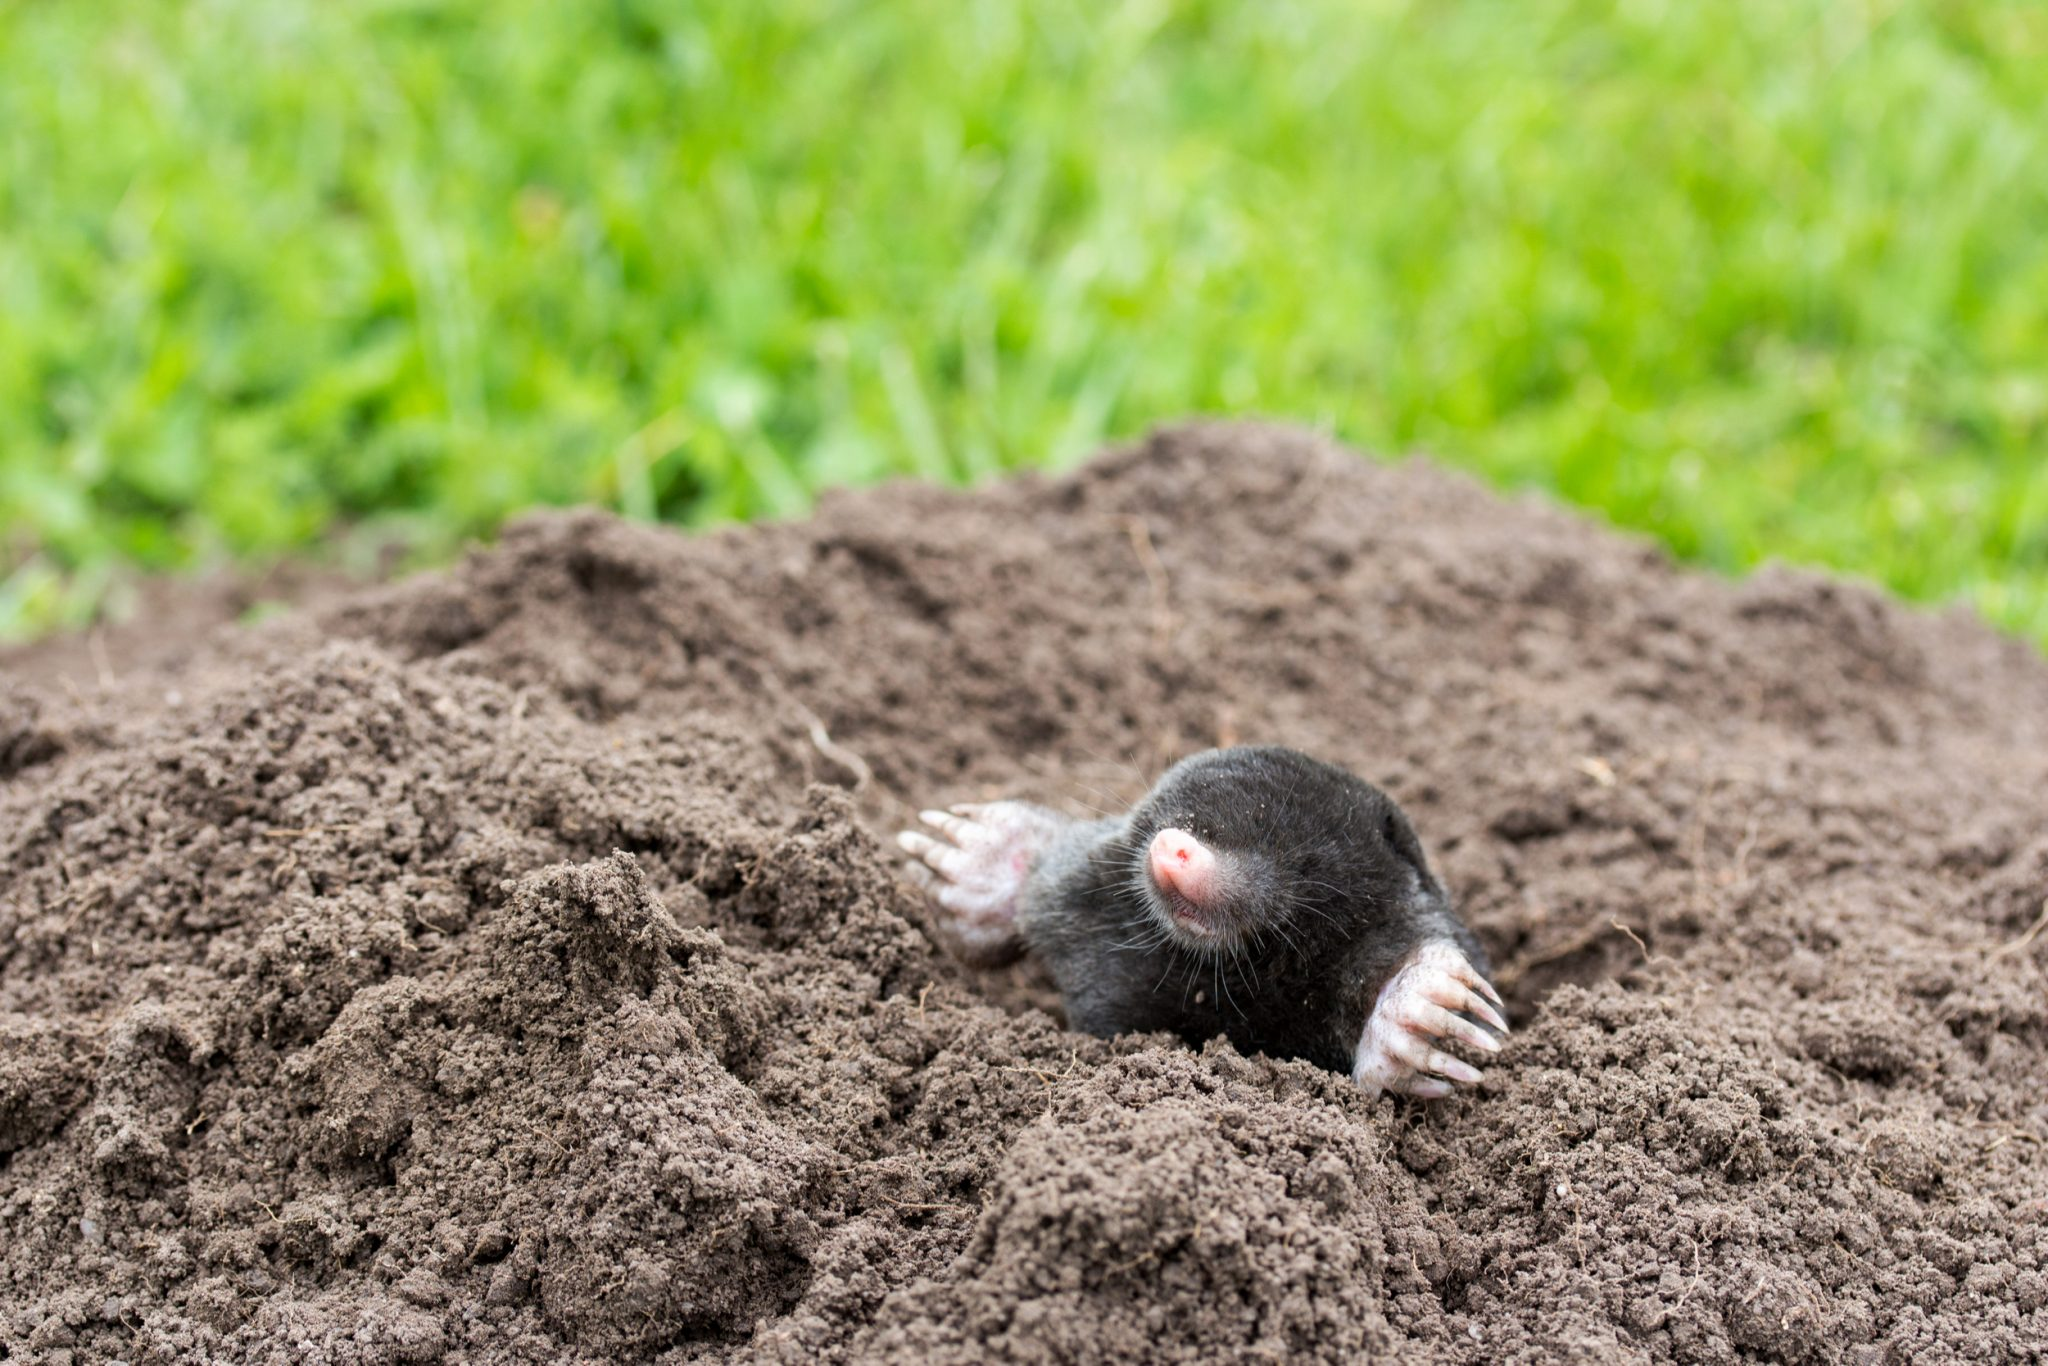 mole removal tips